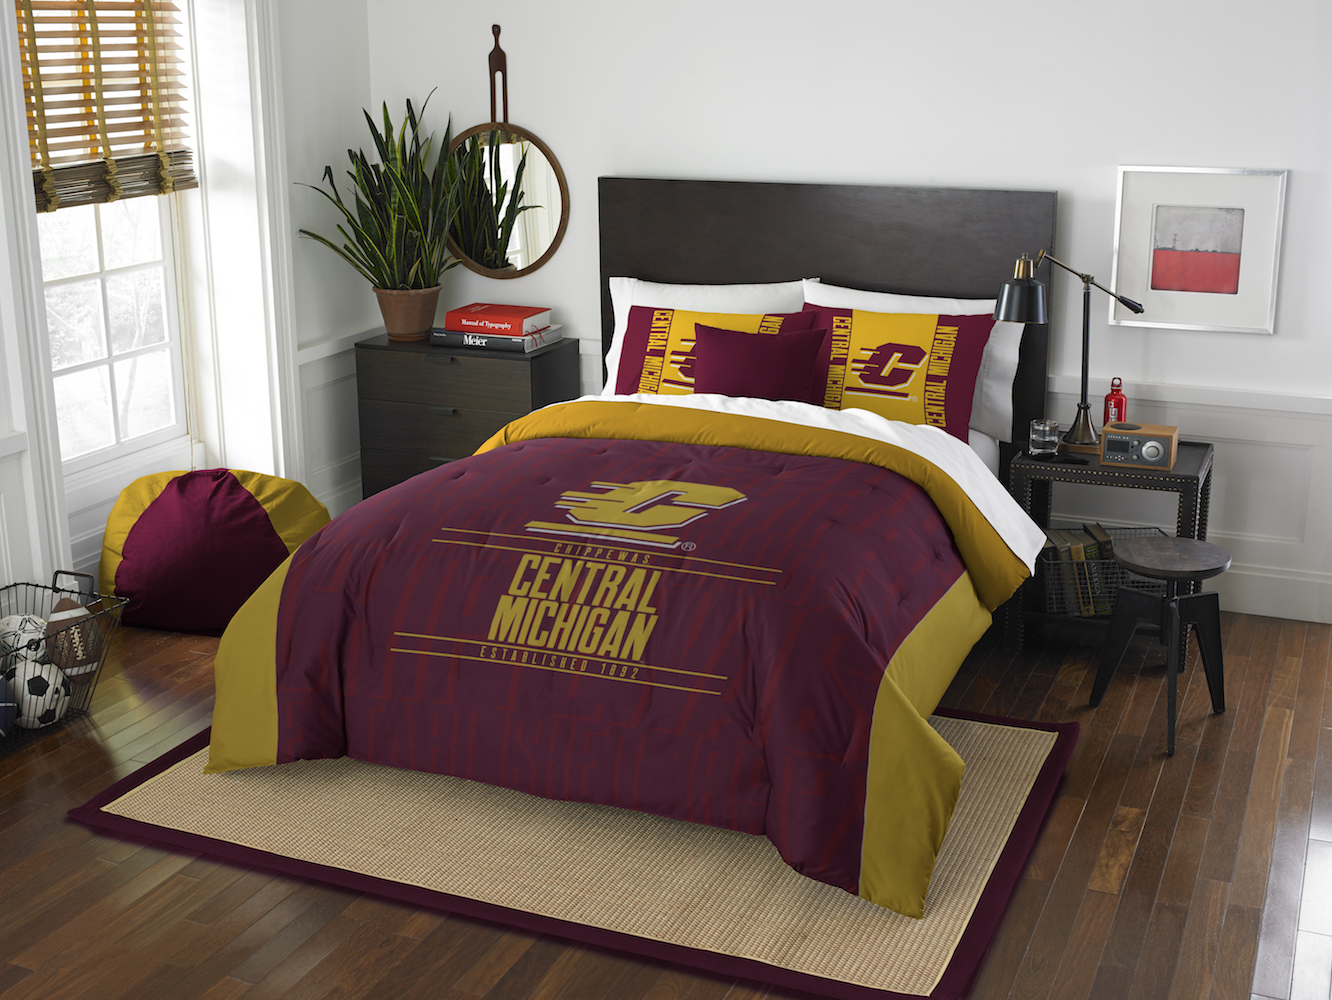 Central Michigan Chippewas QUEEN/FULL size Comforter and 2 Shams